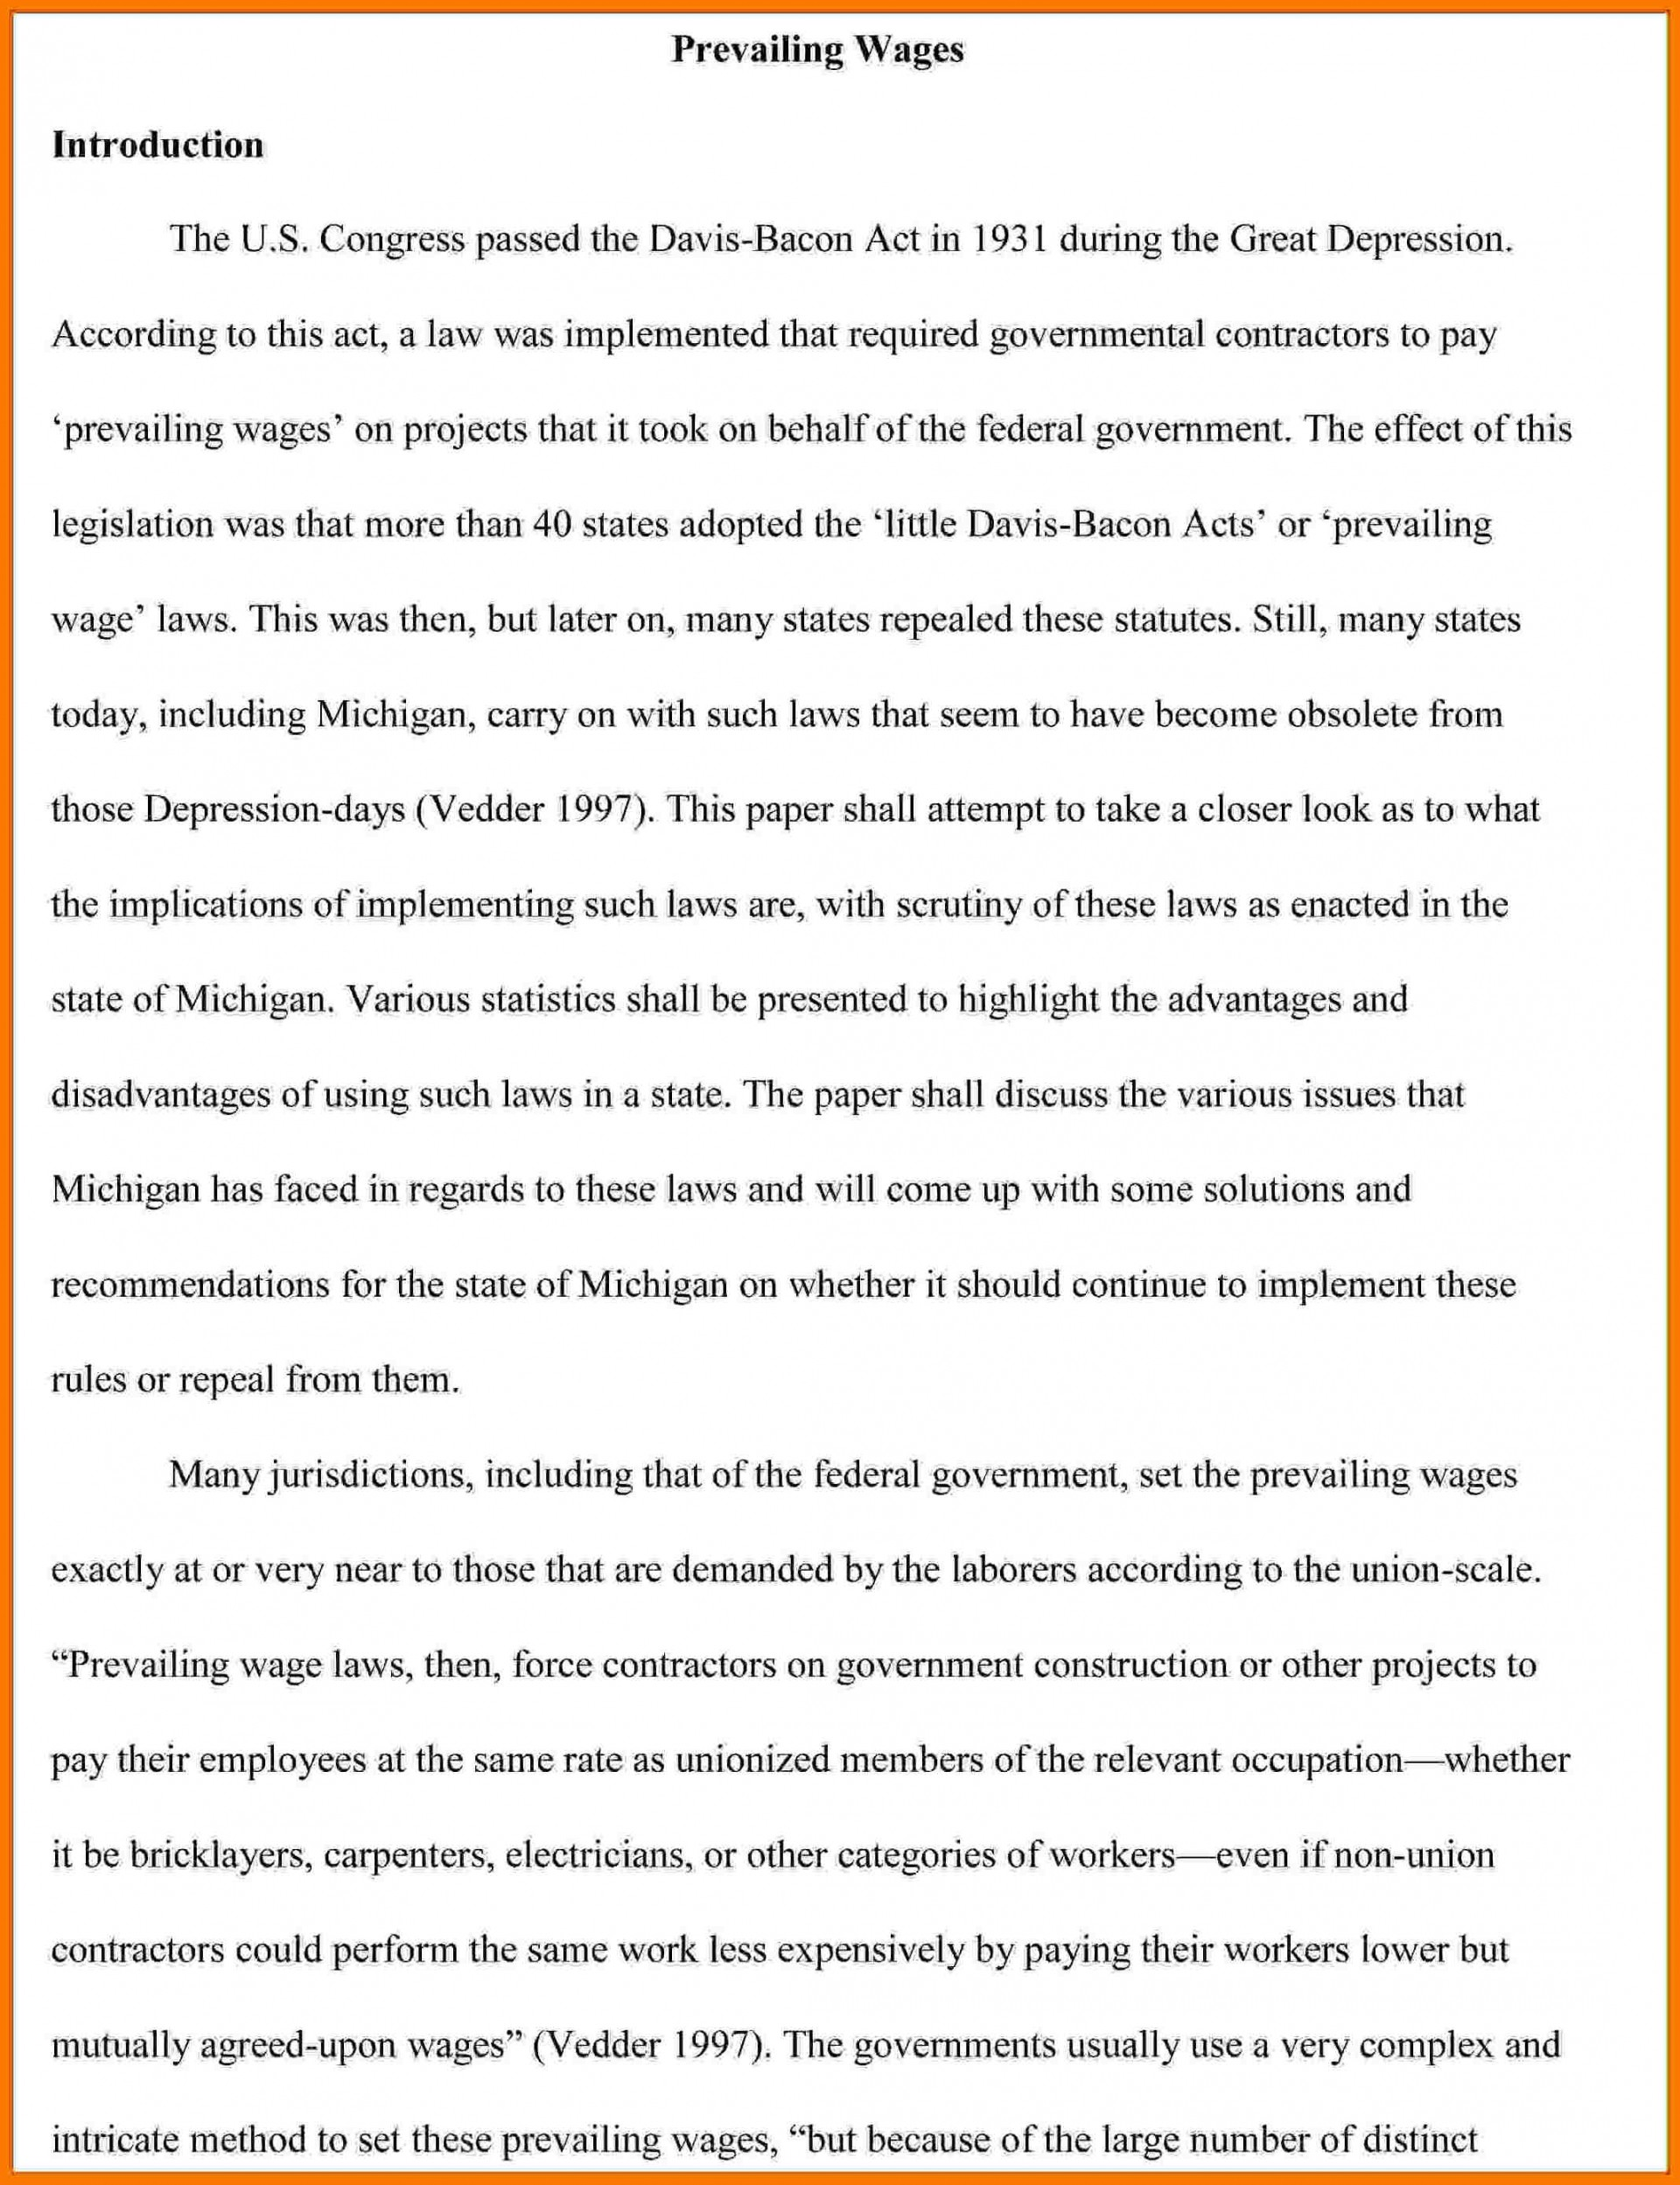 003 Introduction To Research Paper Example Collection Of Solutions Apa Fearsome A How Write An Pdf Paragraph For Mla 1920